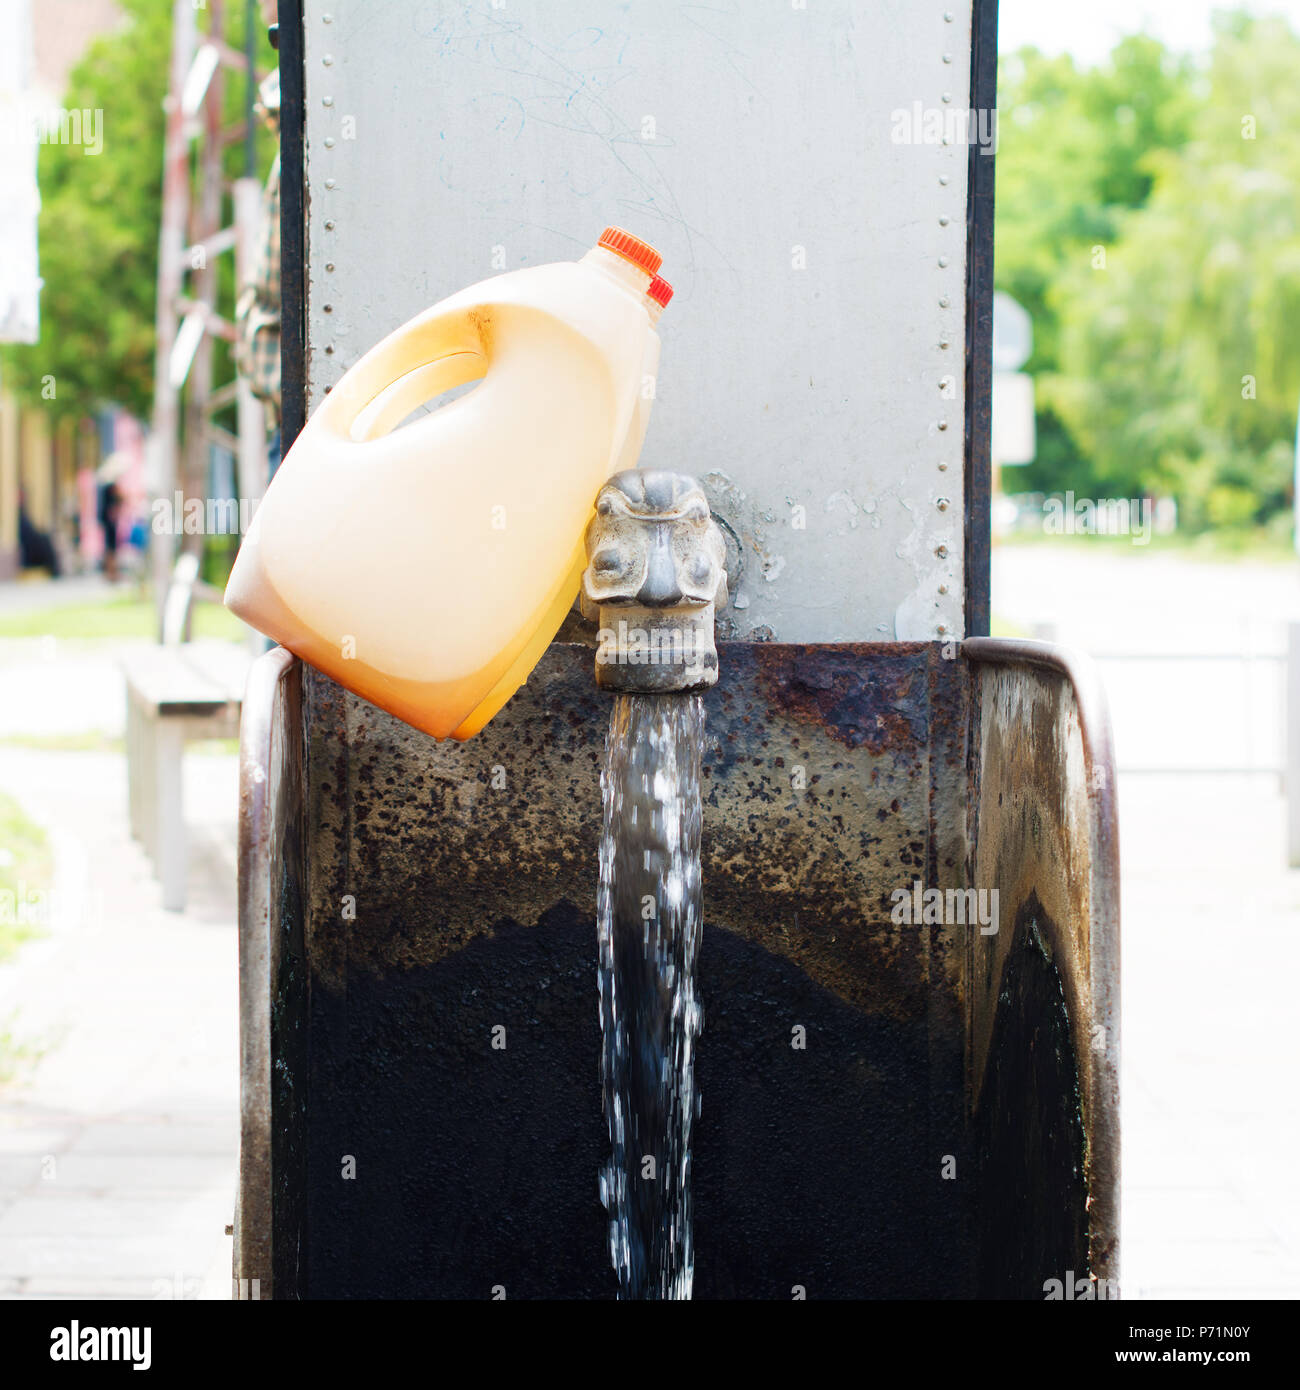 Water fountain installed on a flowing artesian wellhead, for public use. Two plastic demijohns leaned on the spigot. - Stock Image